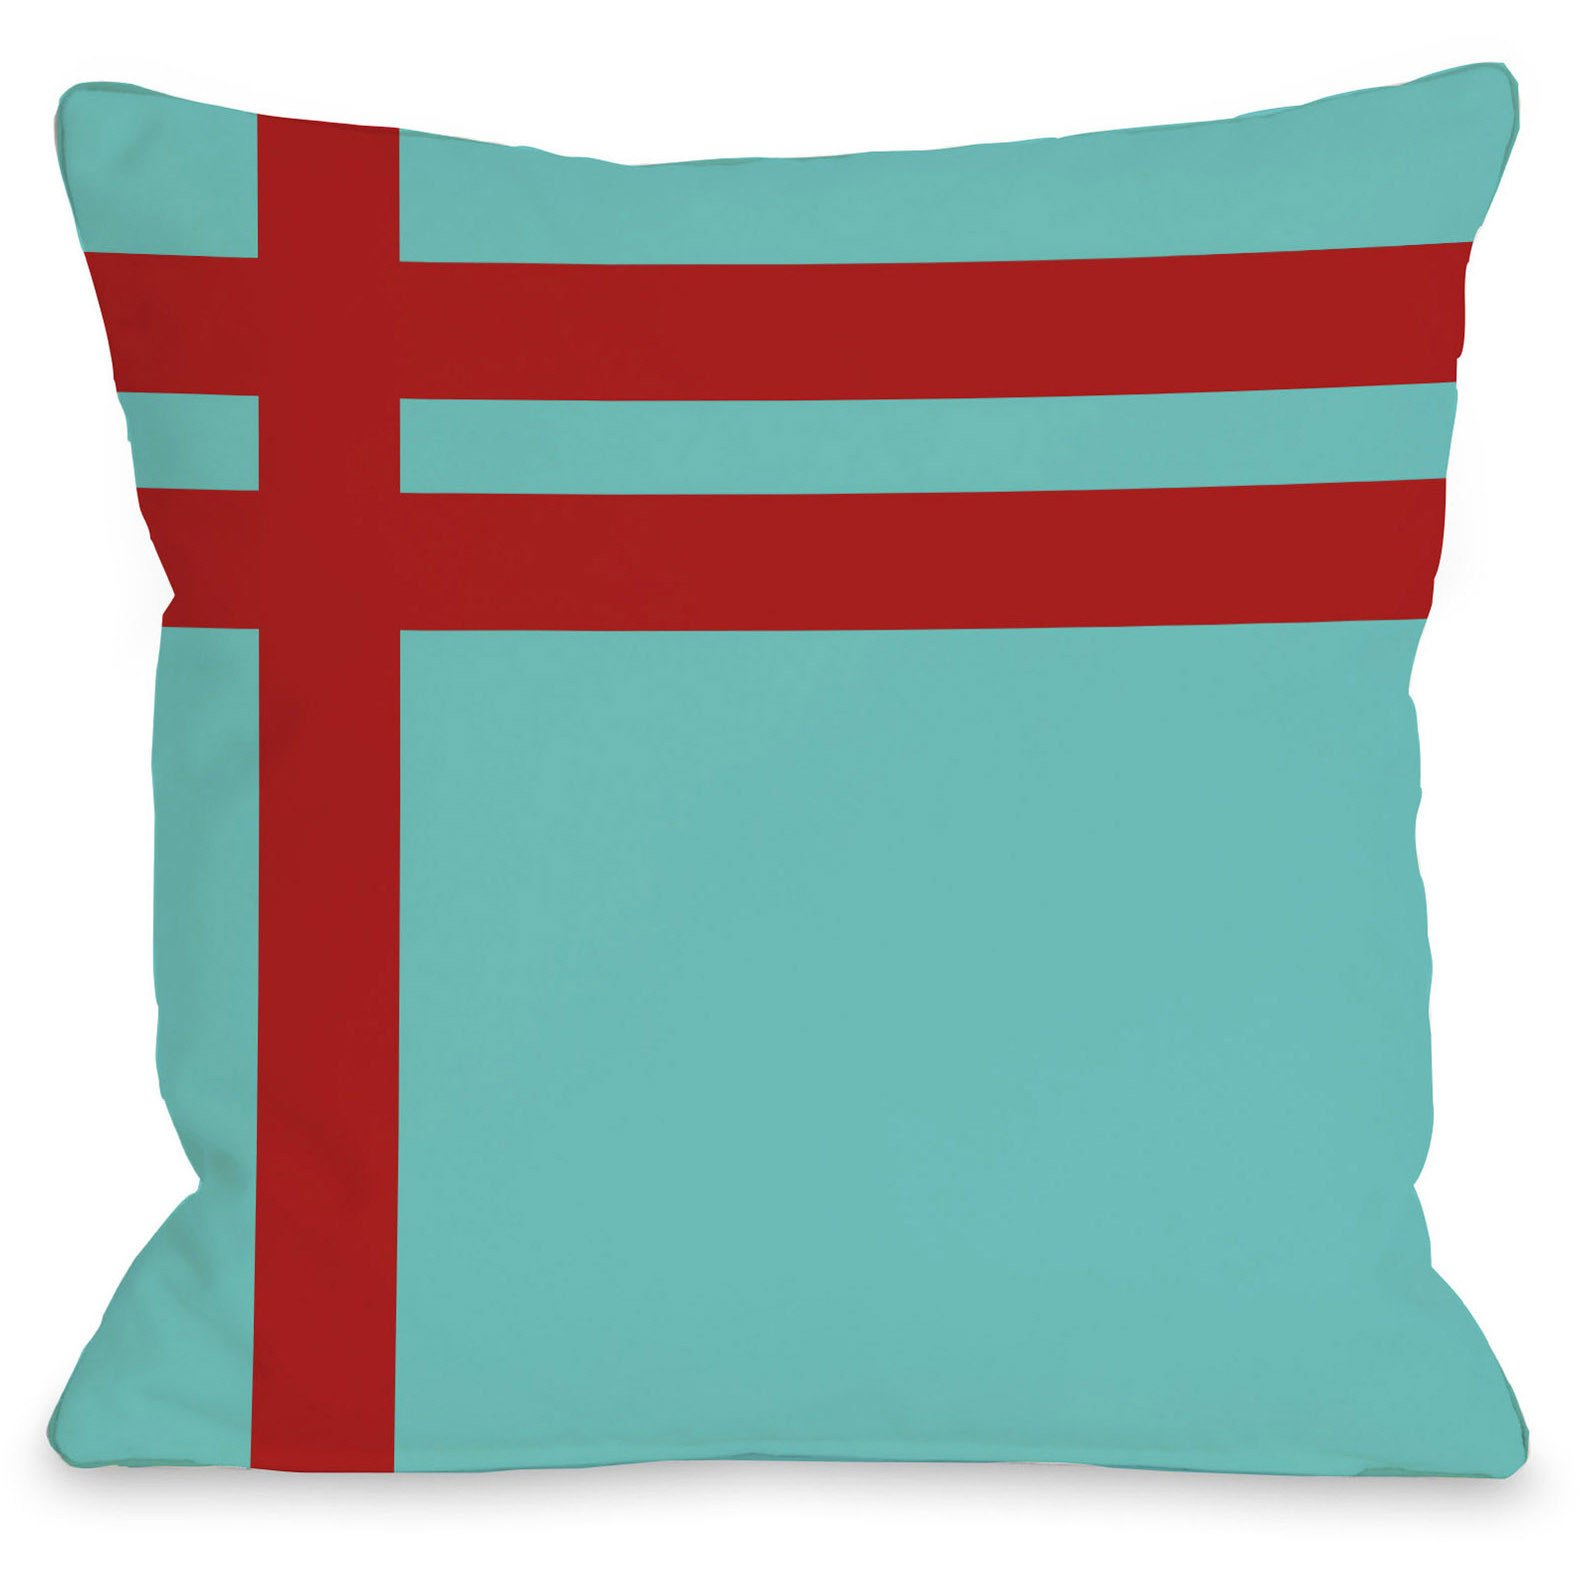 Meet Stripes Outdoor Throw Pillow By Onebellacasa Turquoise Red